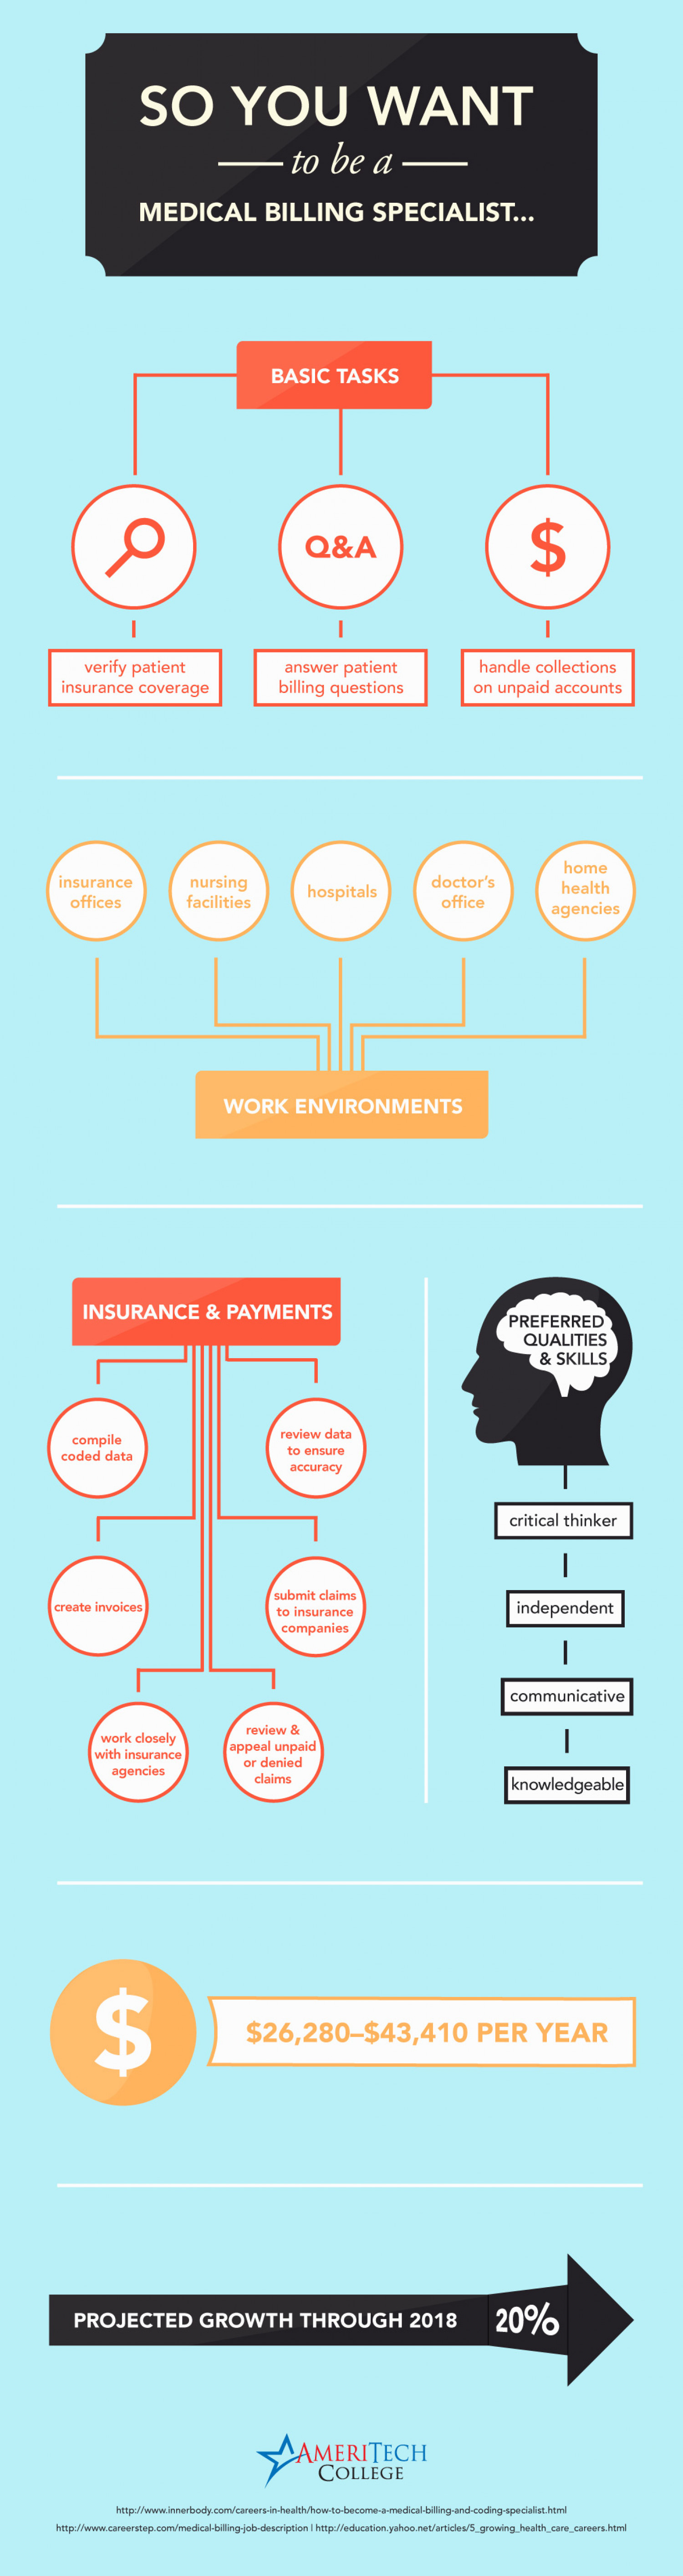 So You Want to be a Medical Billing Specialist... Infographic